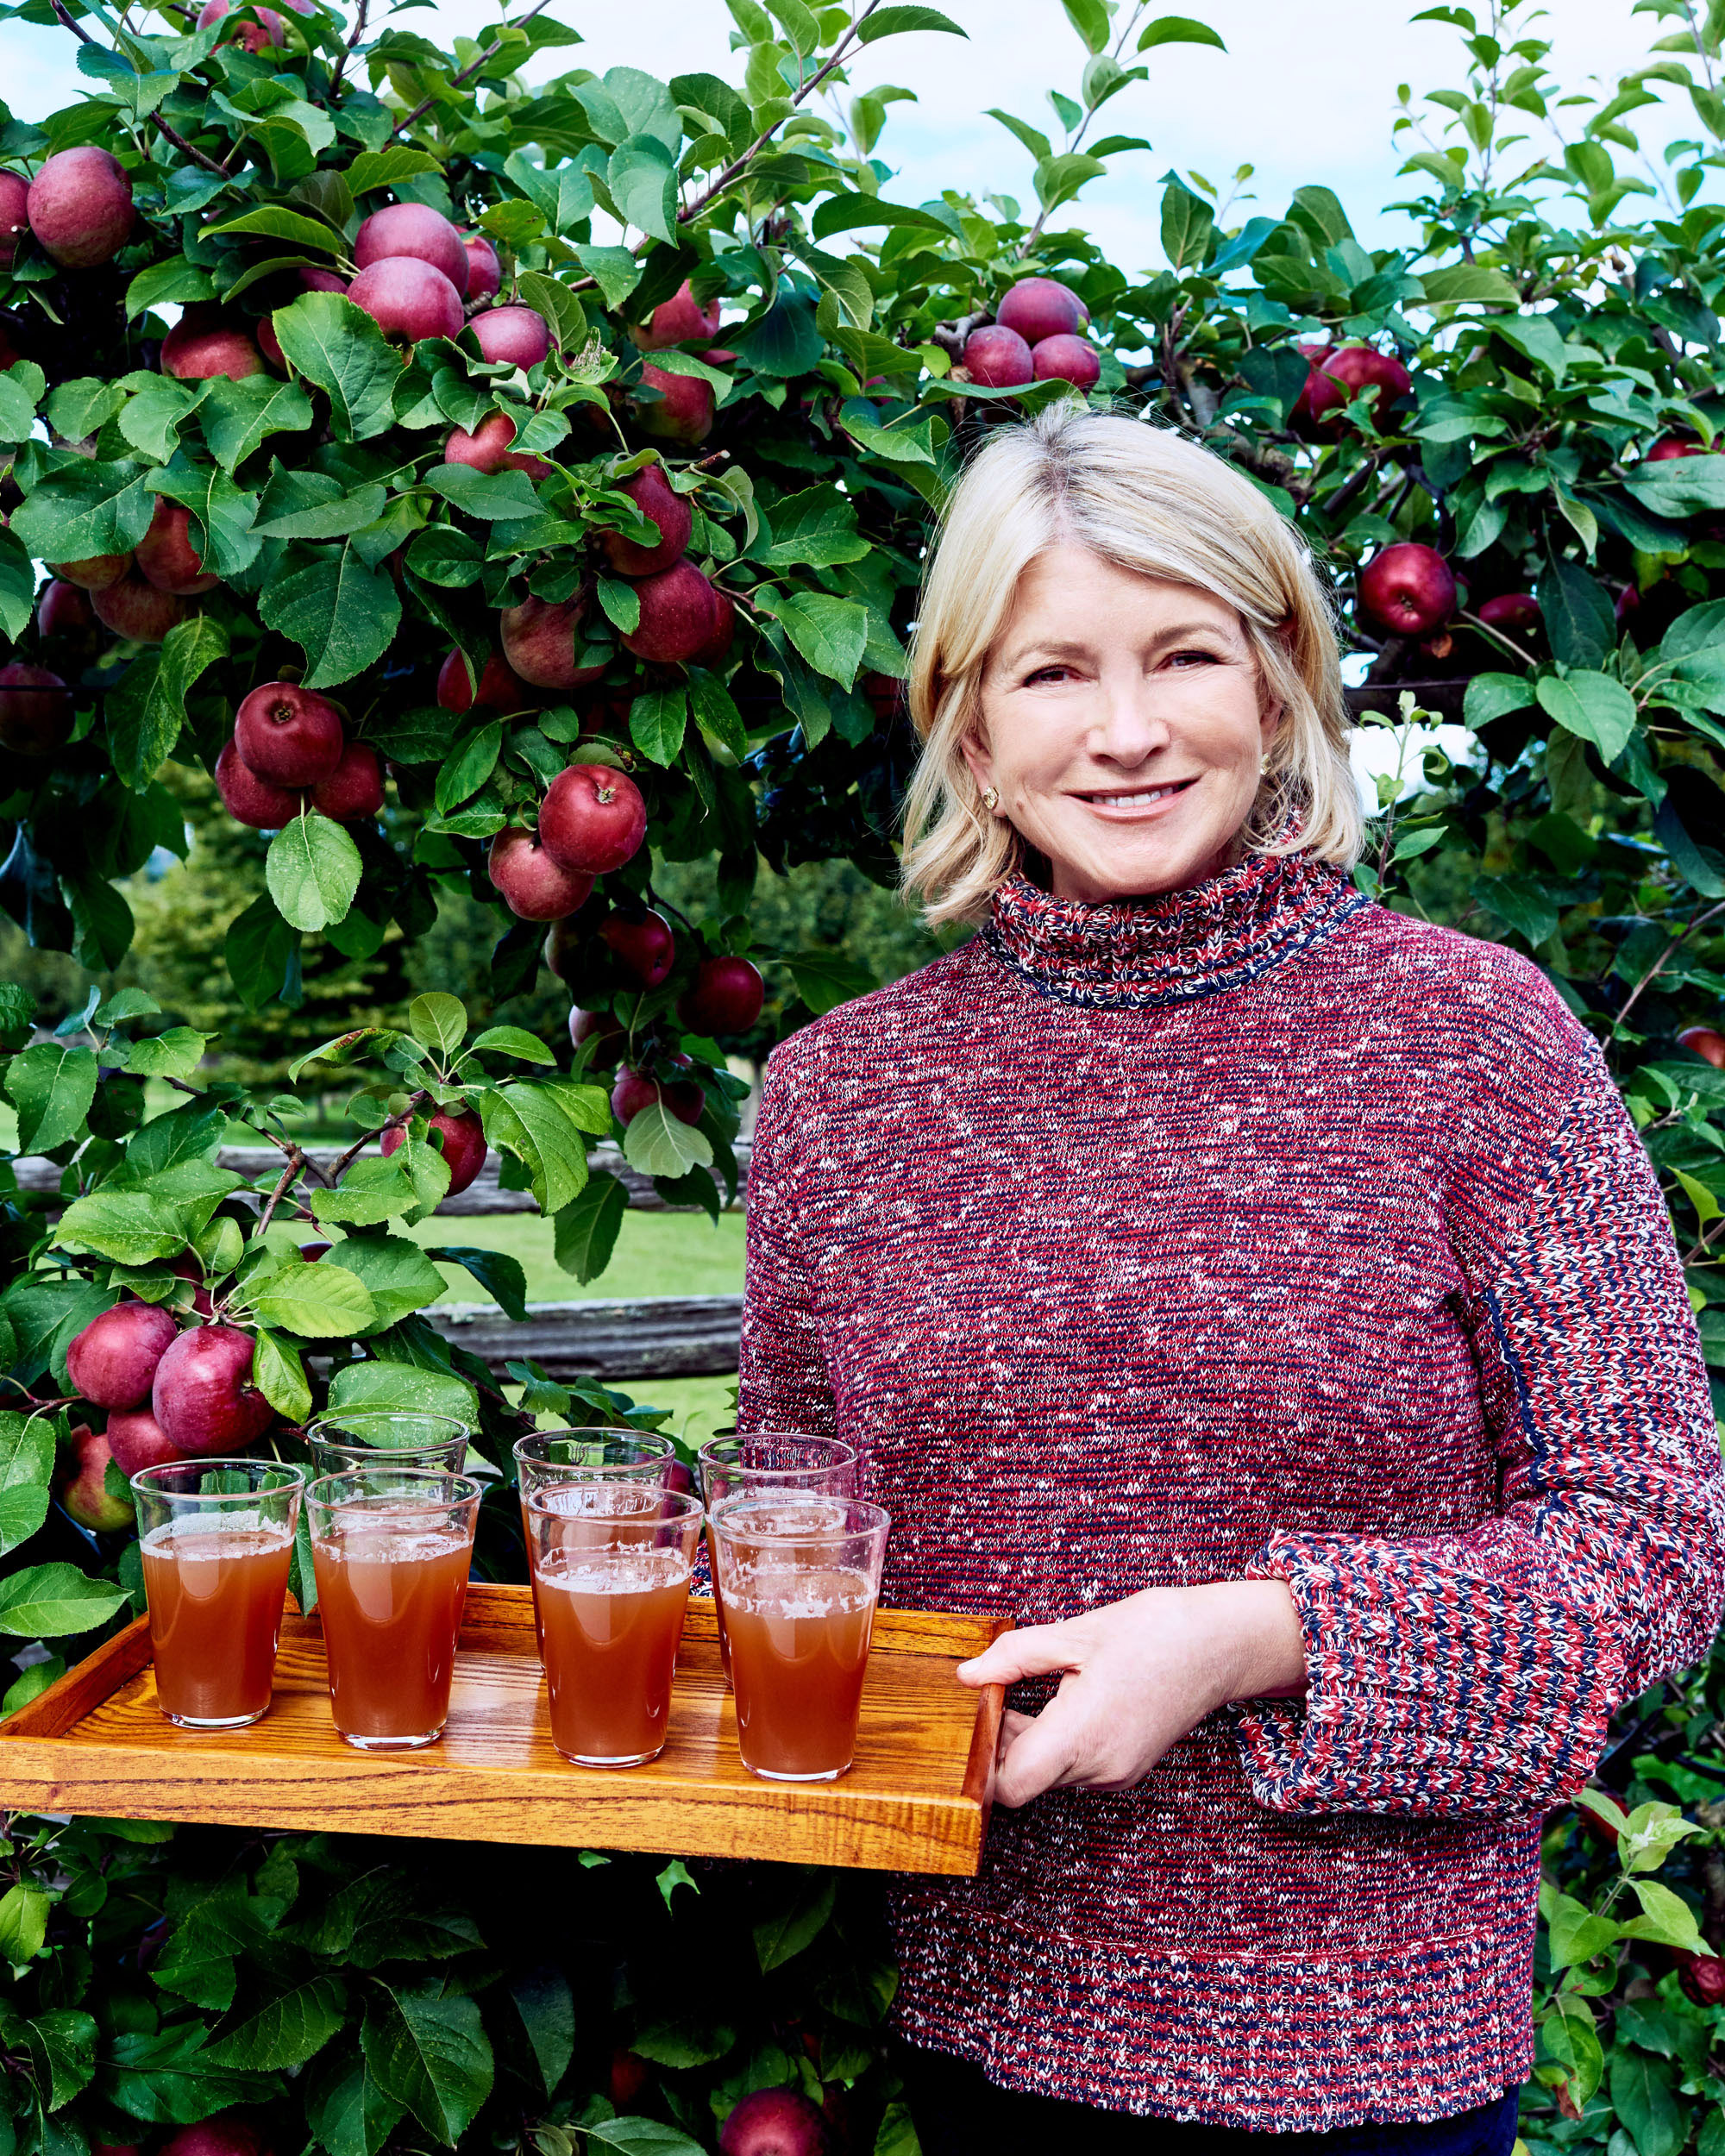 martha stewart glasses of apple cider on tray in front of apple trees